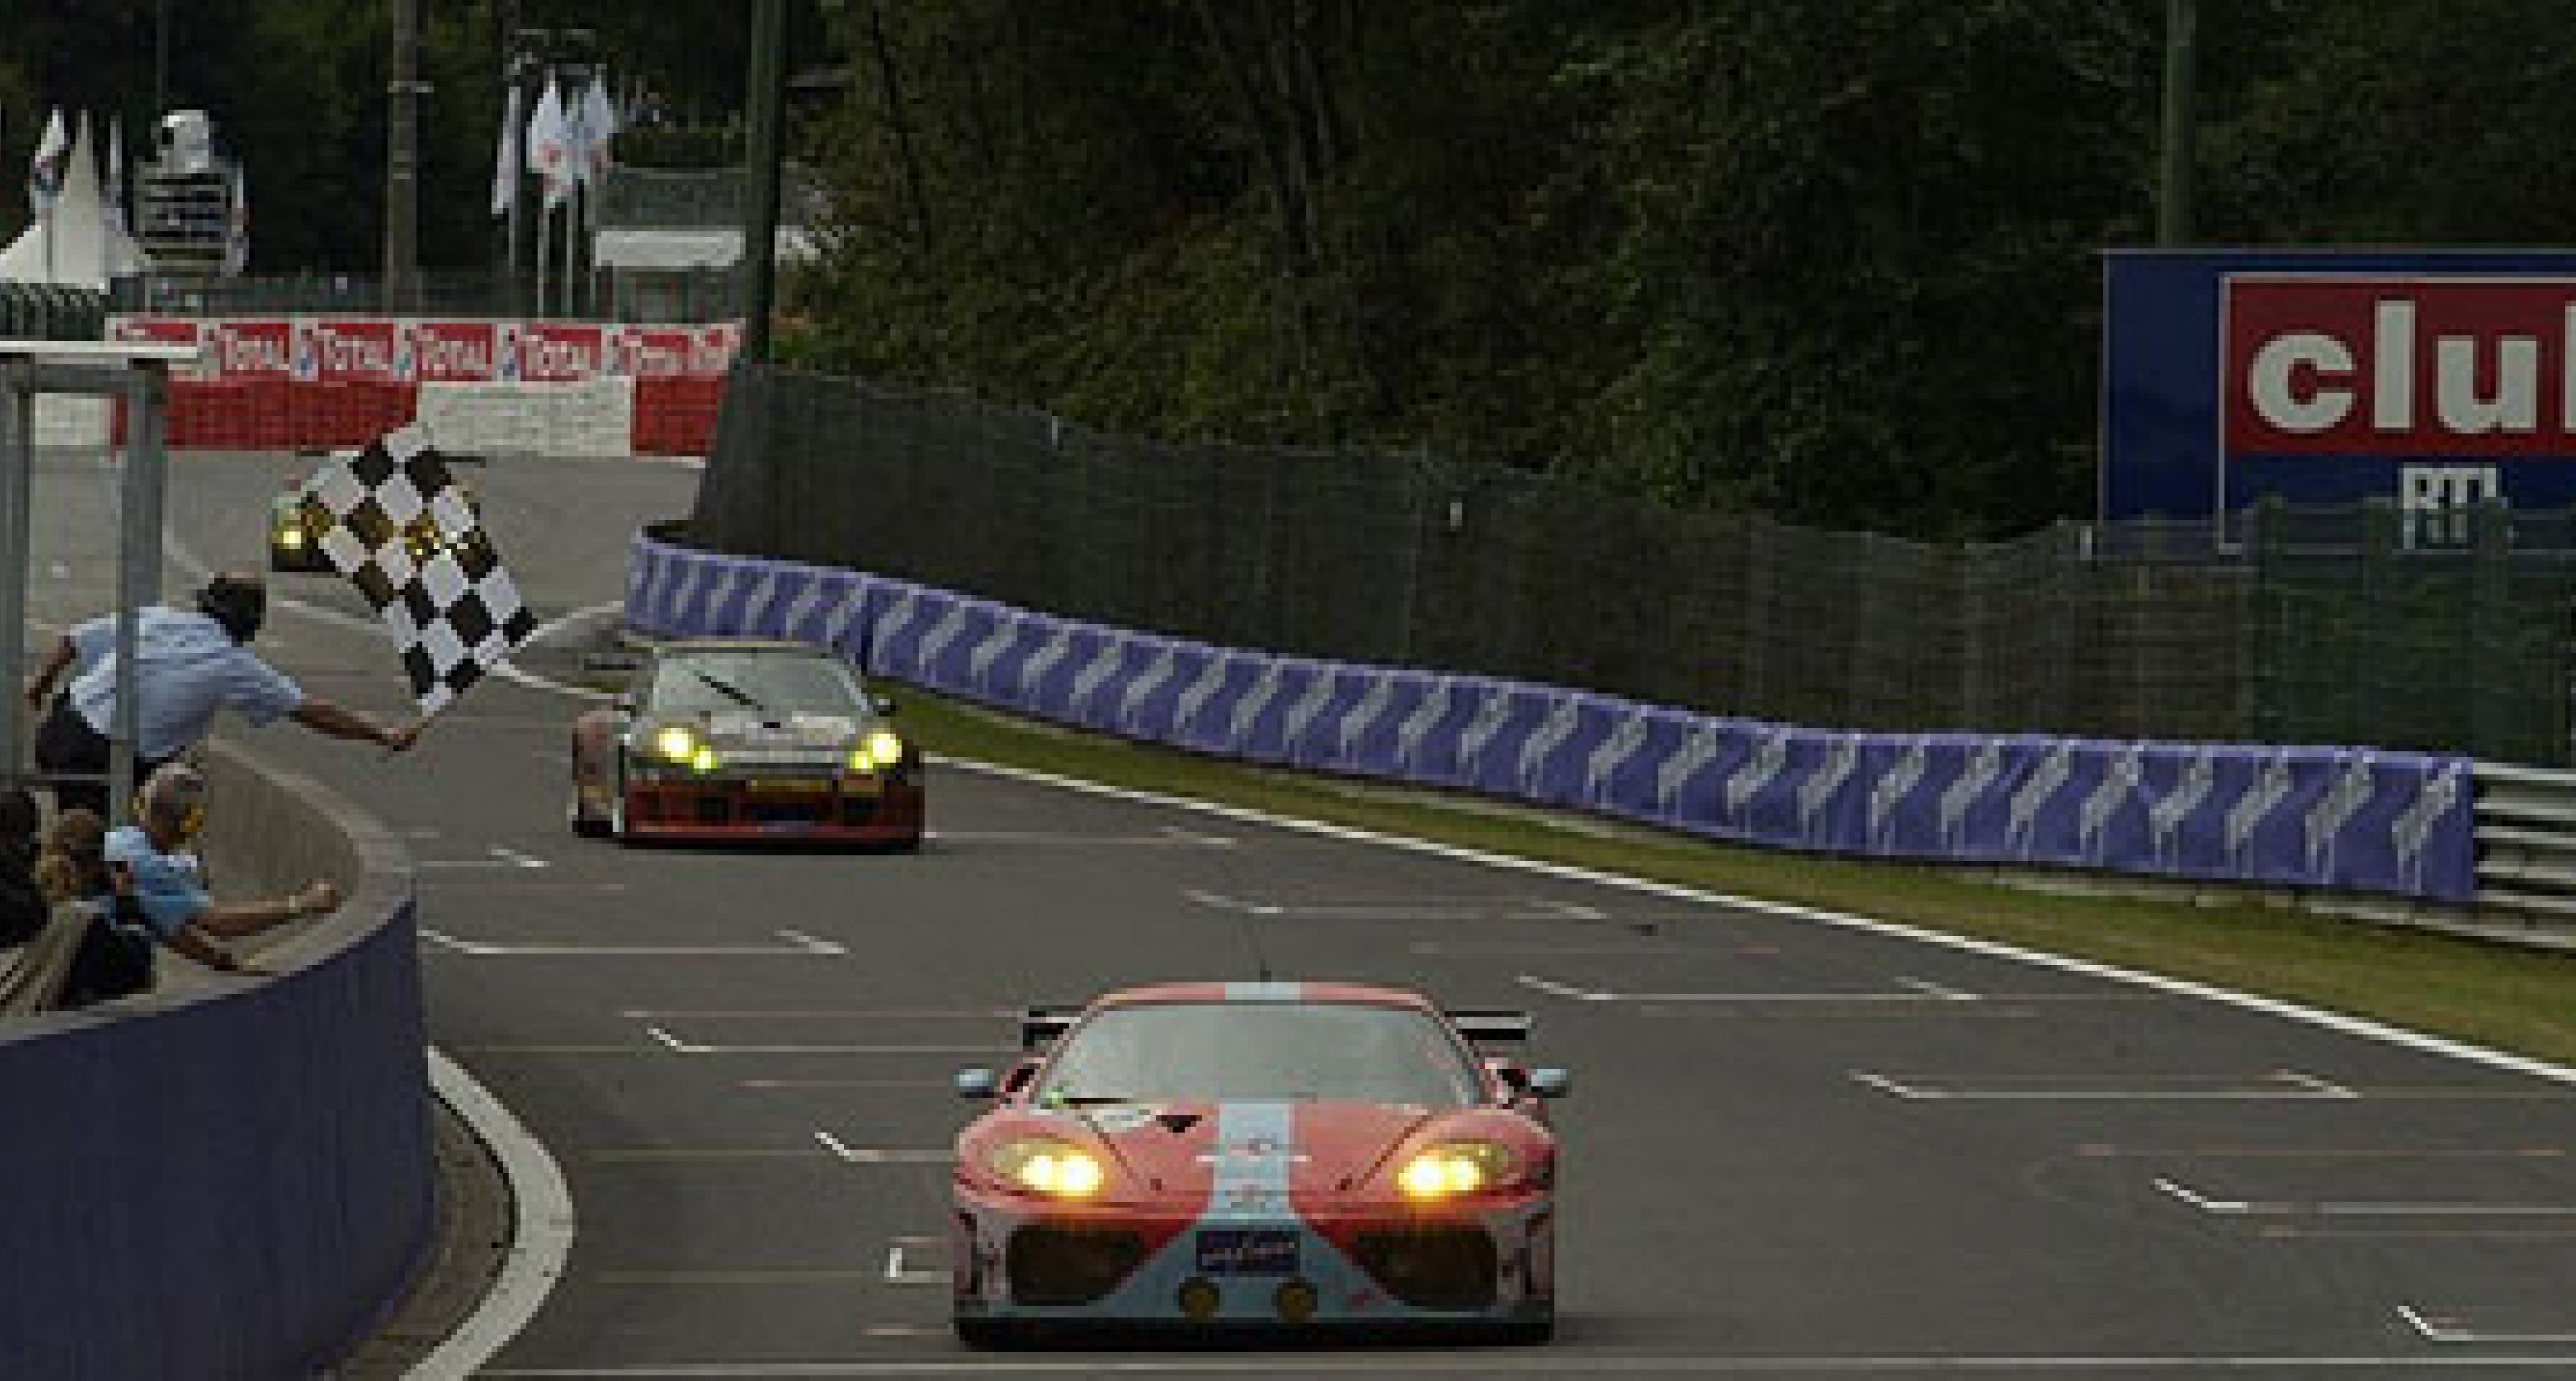 Team Maranello Concessionaires - Spa disappointments